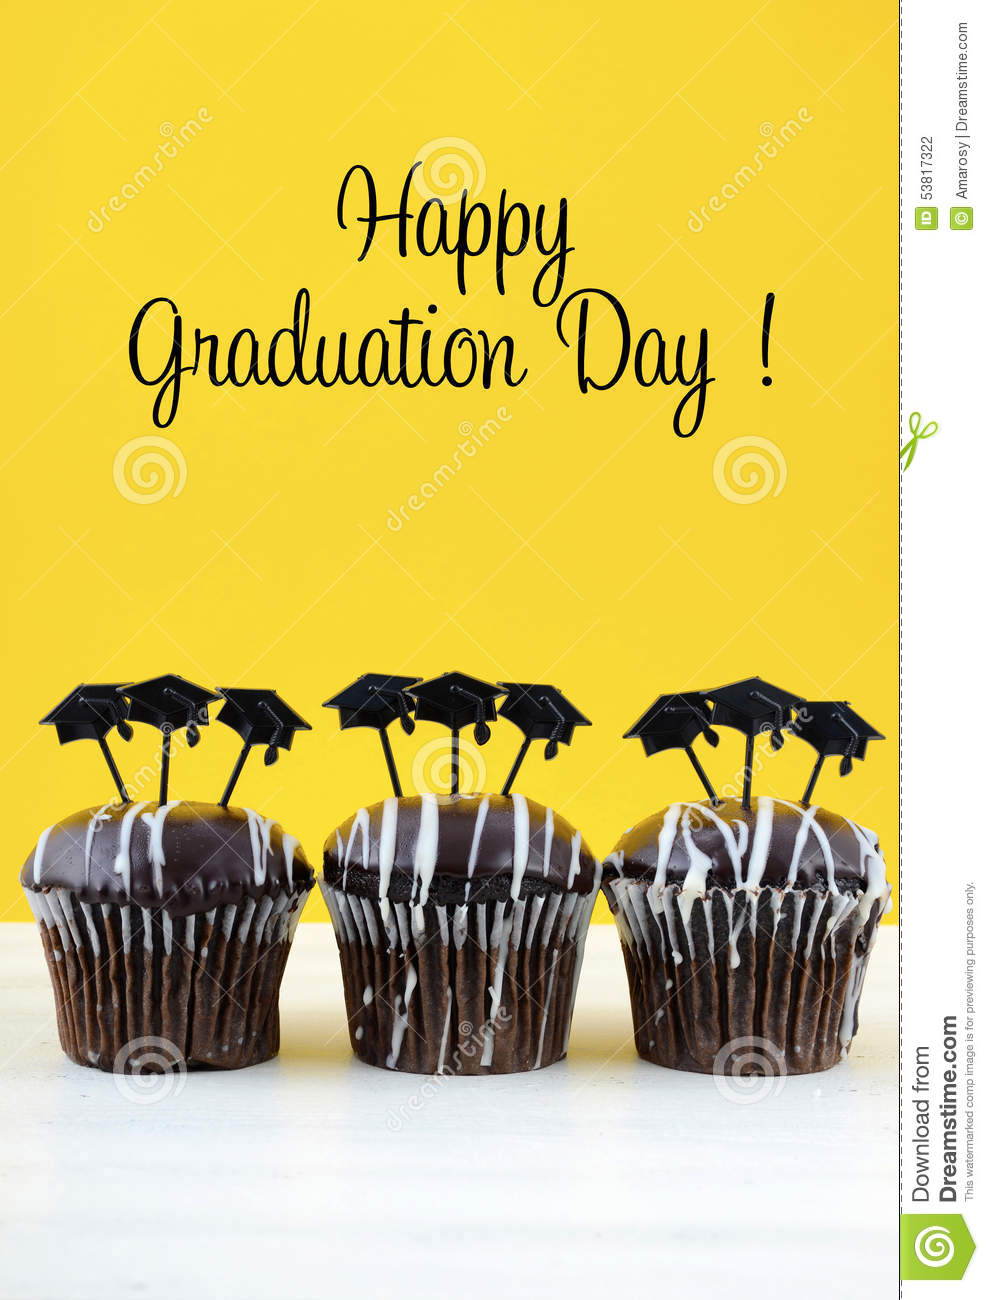 Happy Graduation Day Party Chocolate Cupcakes Stock Photo